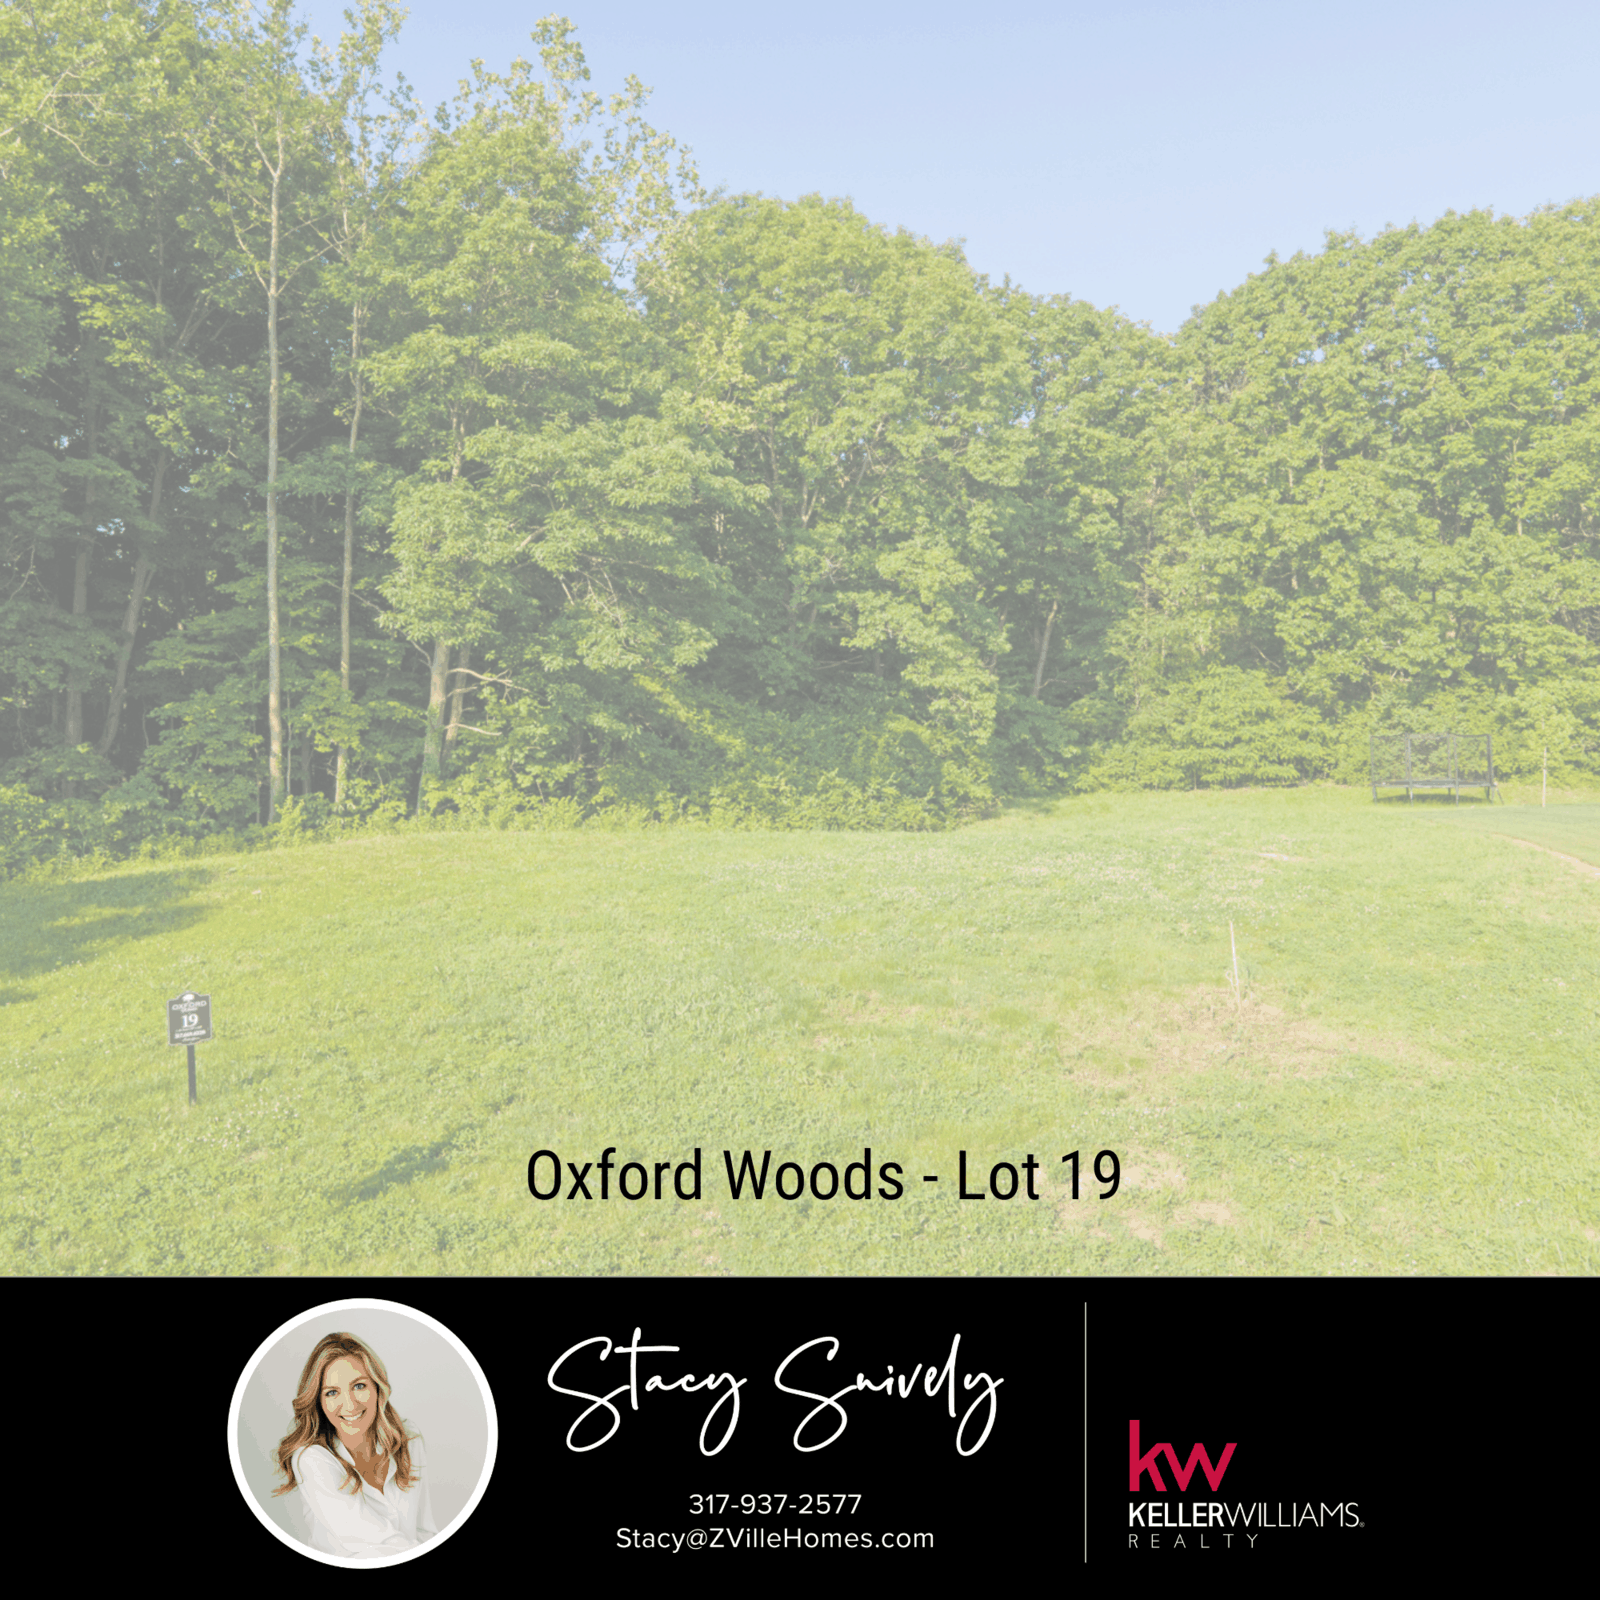 Oxford Woods - Lot 19 Just Listed